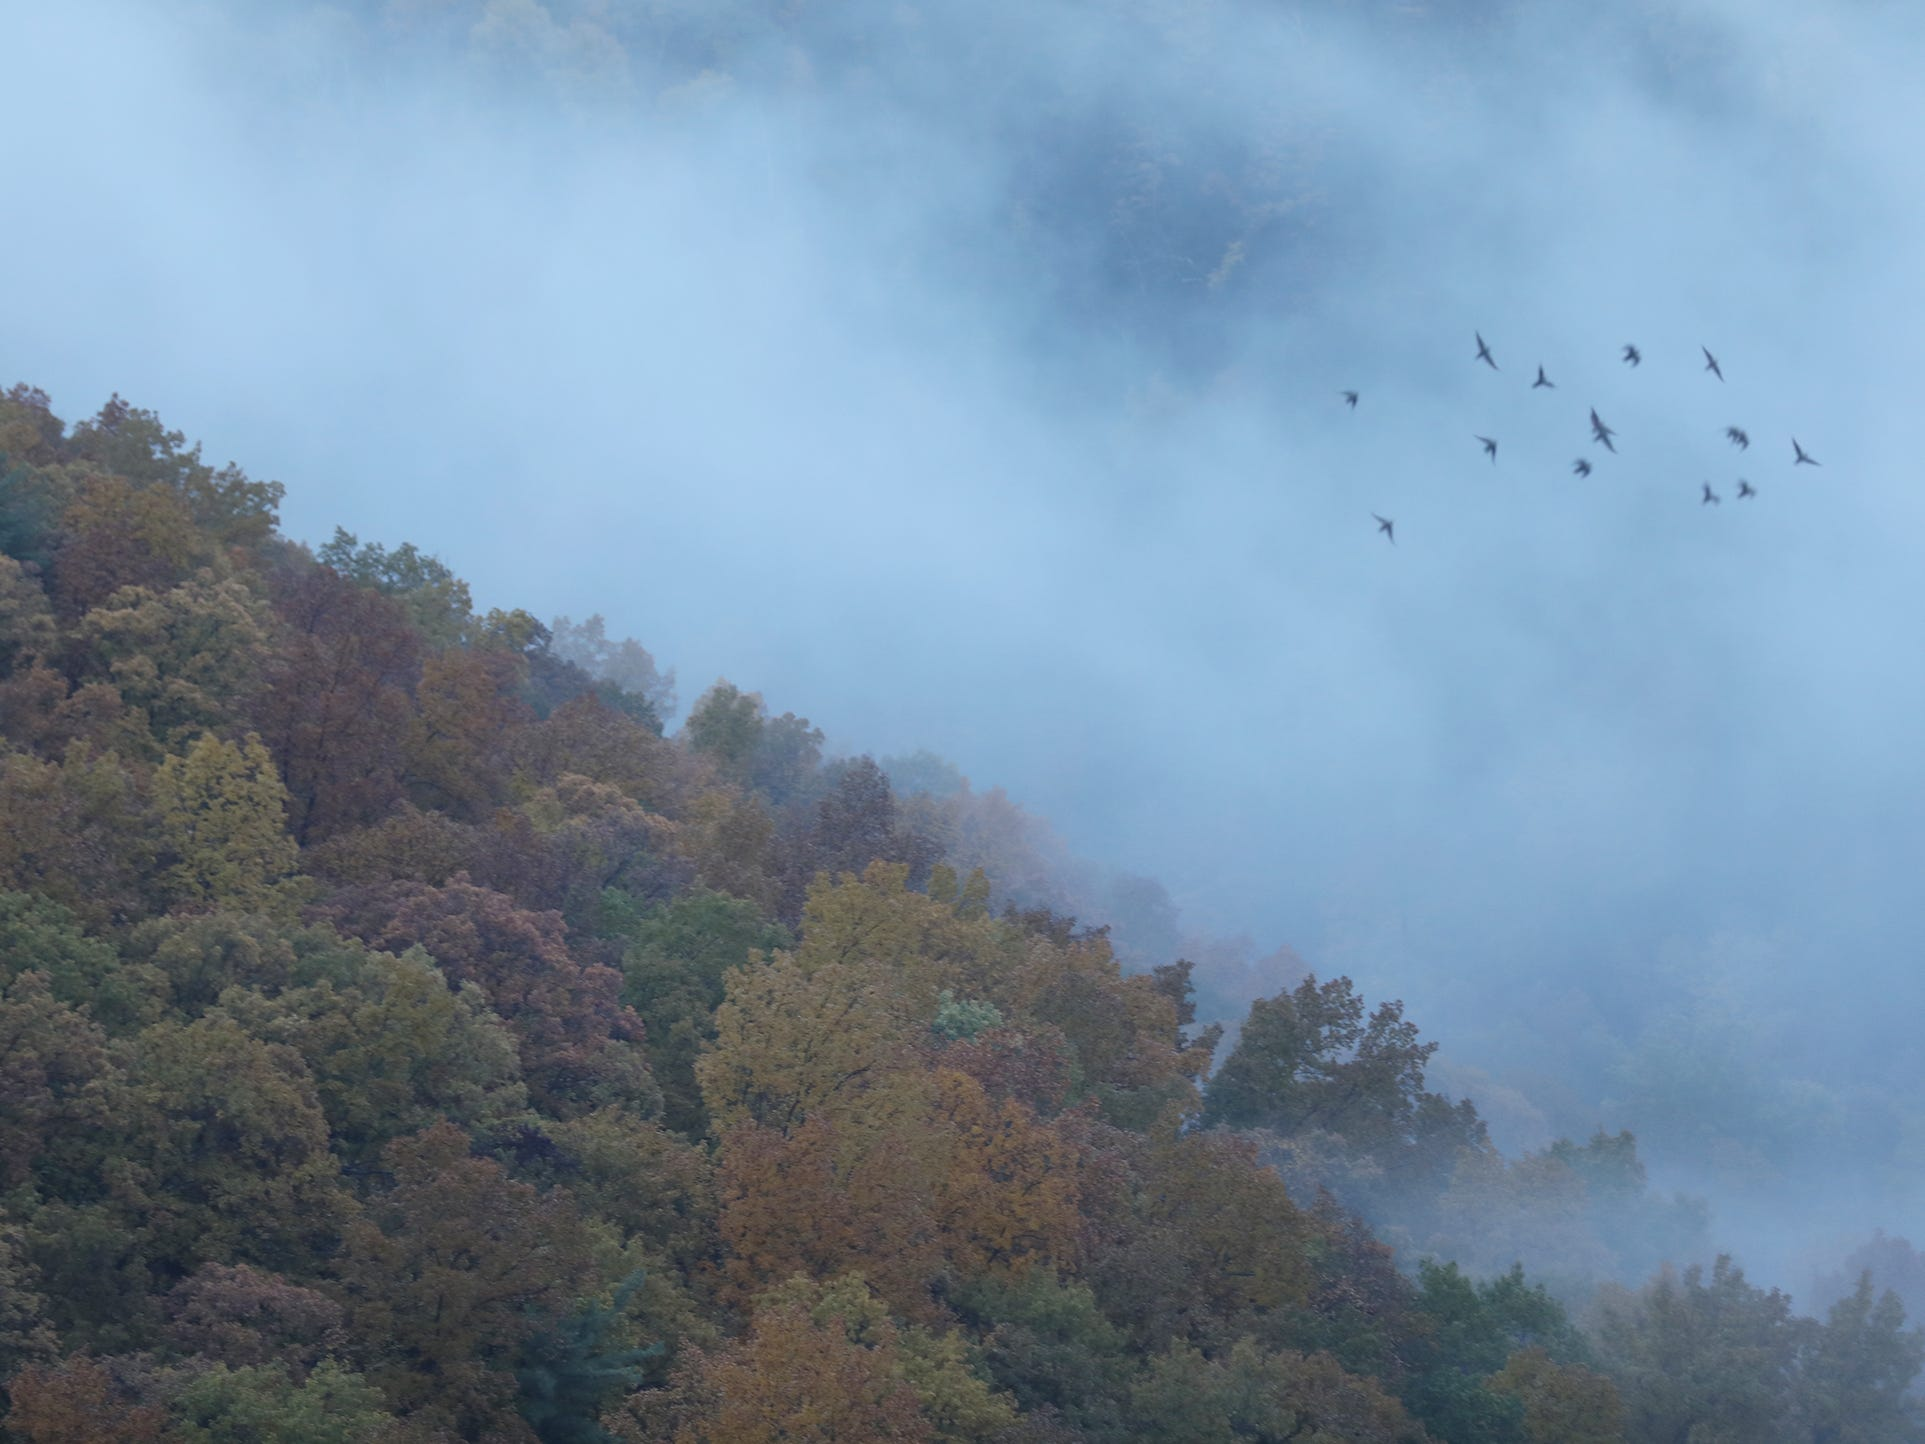 A flock of birds zoom across the gorge as fog rolls over the trees at the Archery Field Overlook in Letchworth State Park.